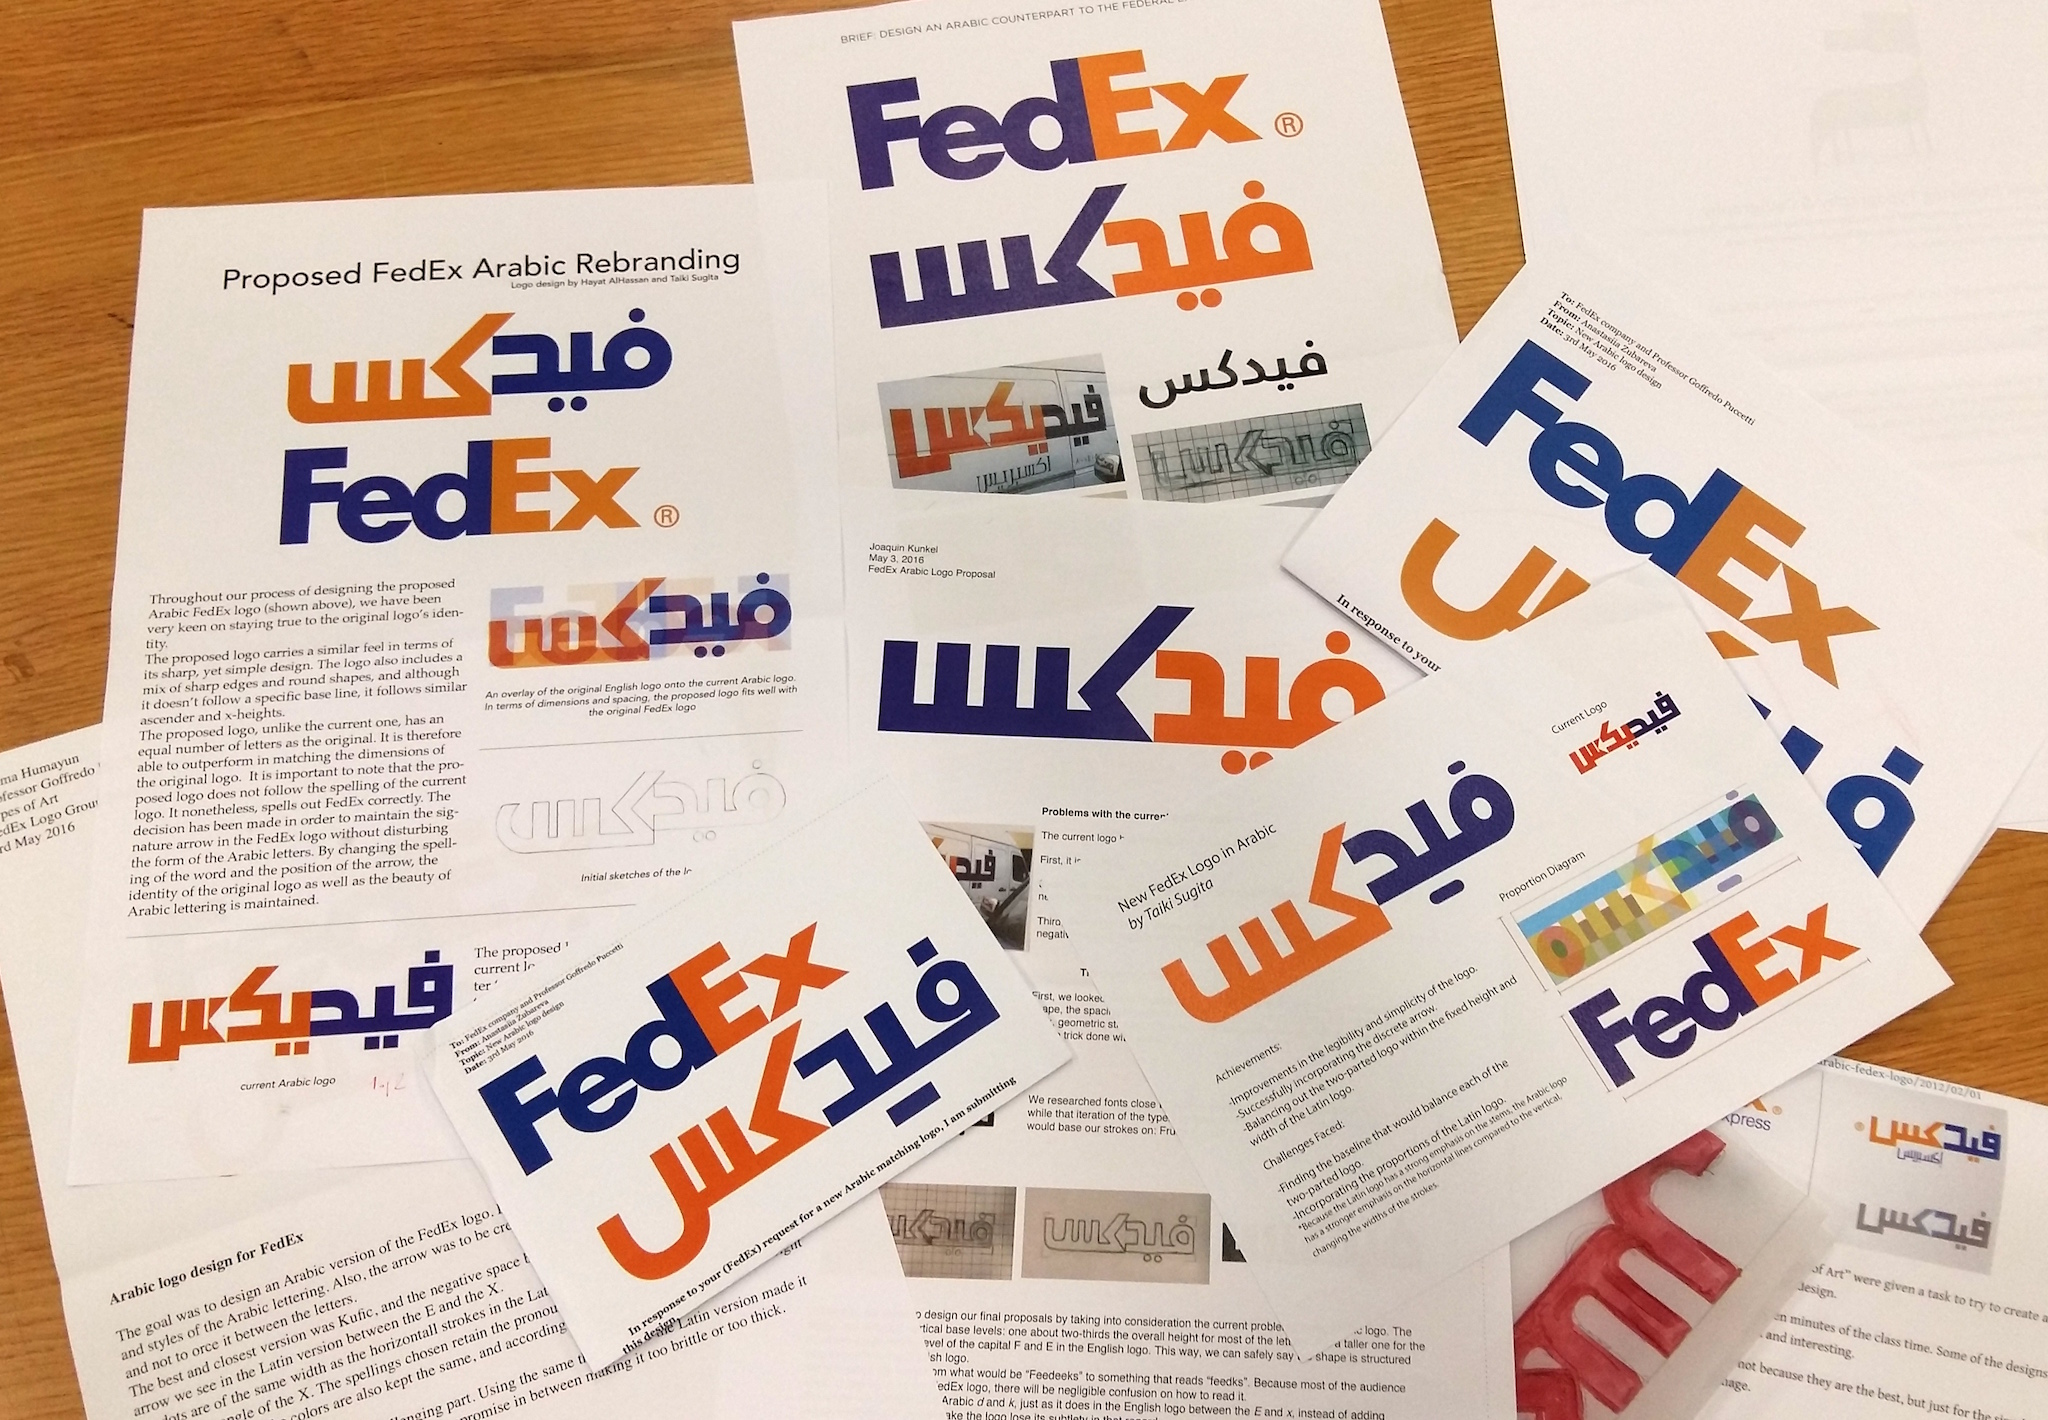 Fedex Arabic: When it absolutely, positively needs to be redone overnight.